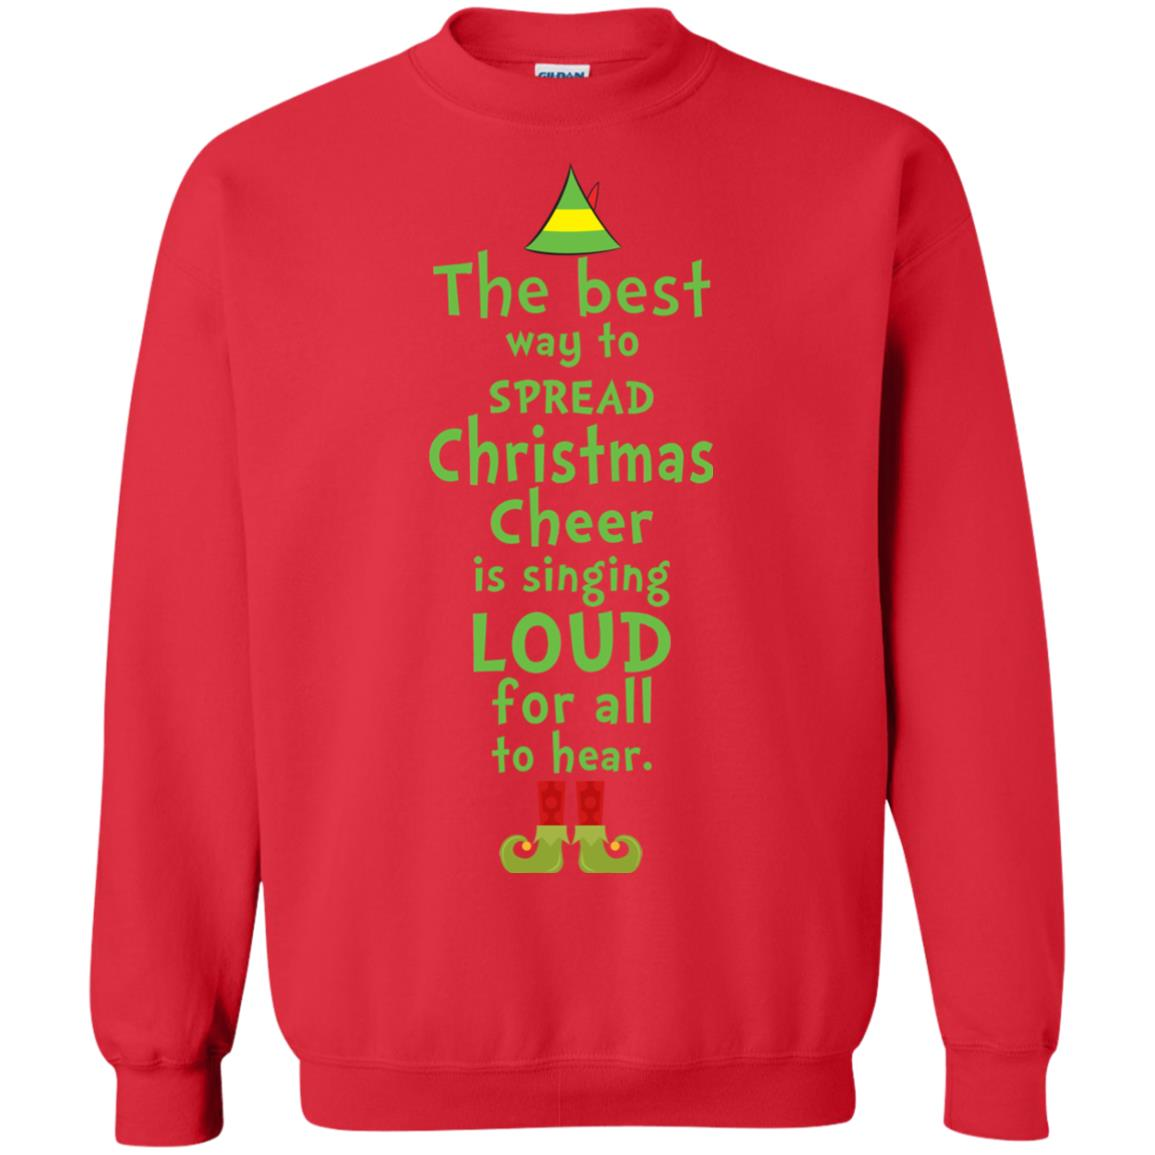 image 2463 - The best way to spread Christmas cheer is singing loud for all to hear Sweater, Shirt